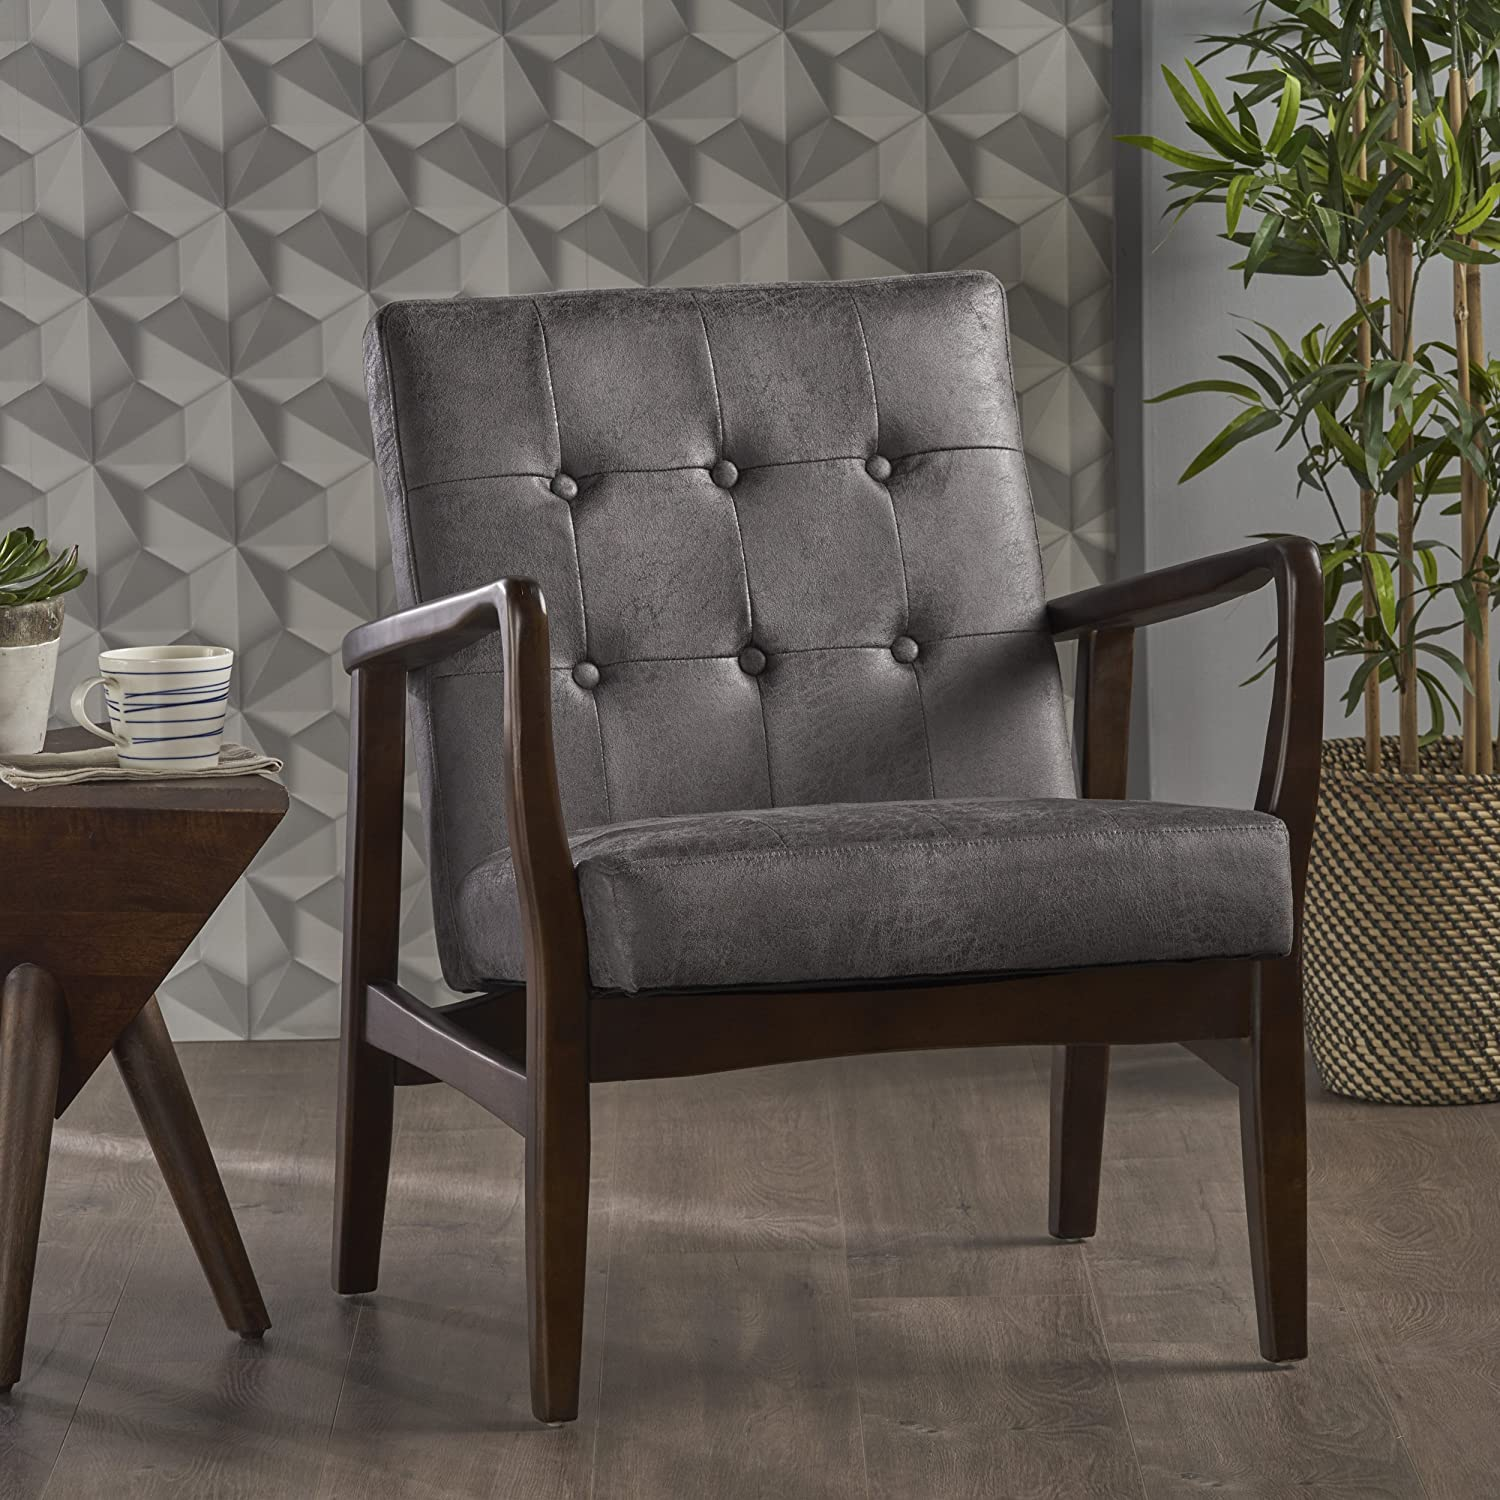 Christopher Knight Home 302417 Conrad Mid Century Modern Arm Chair in Slate Micro Fiber